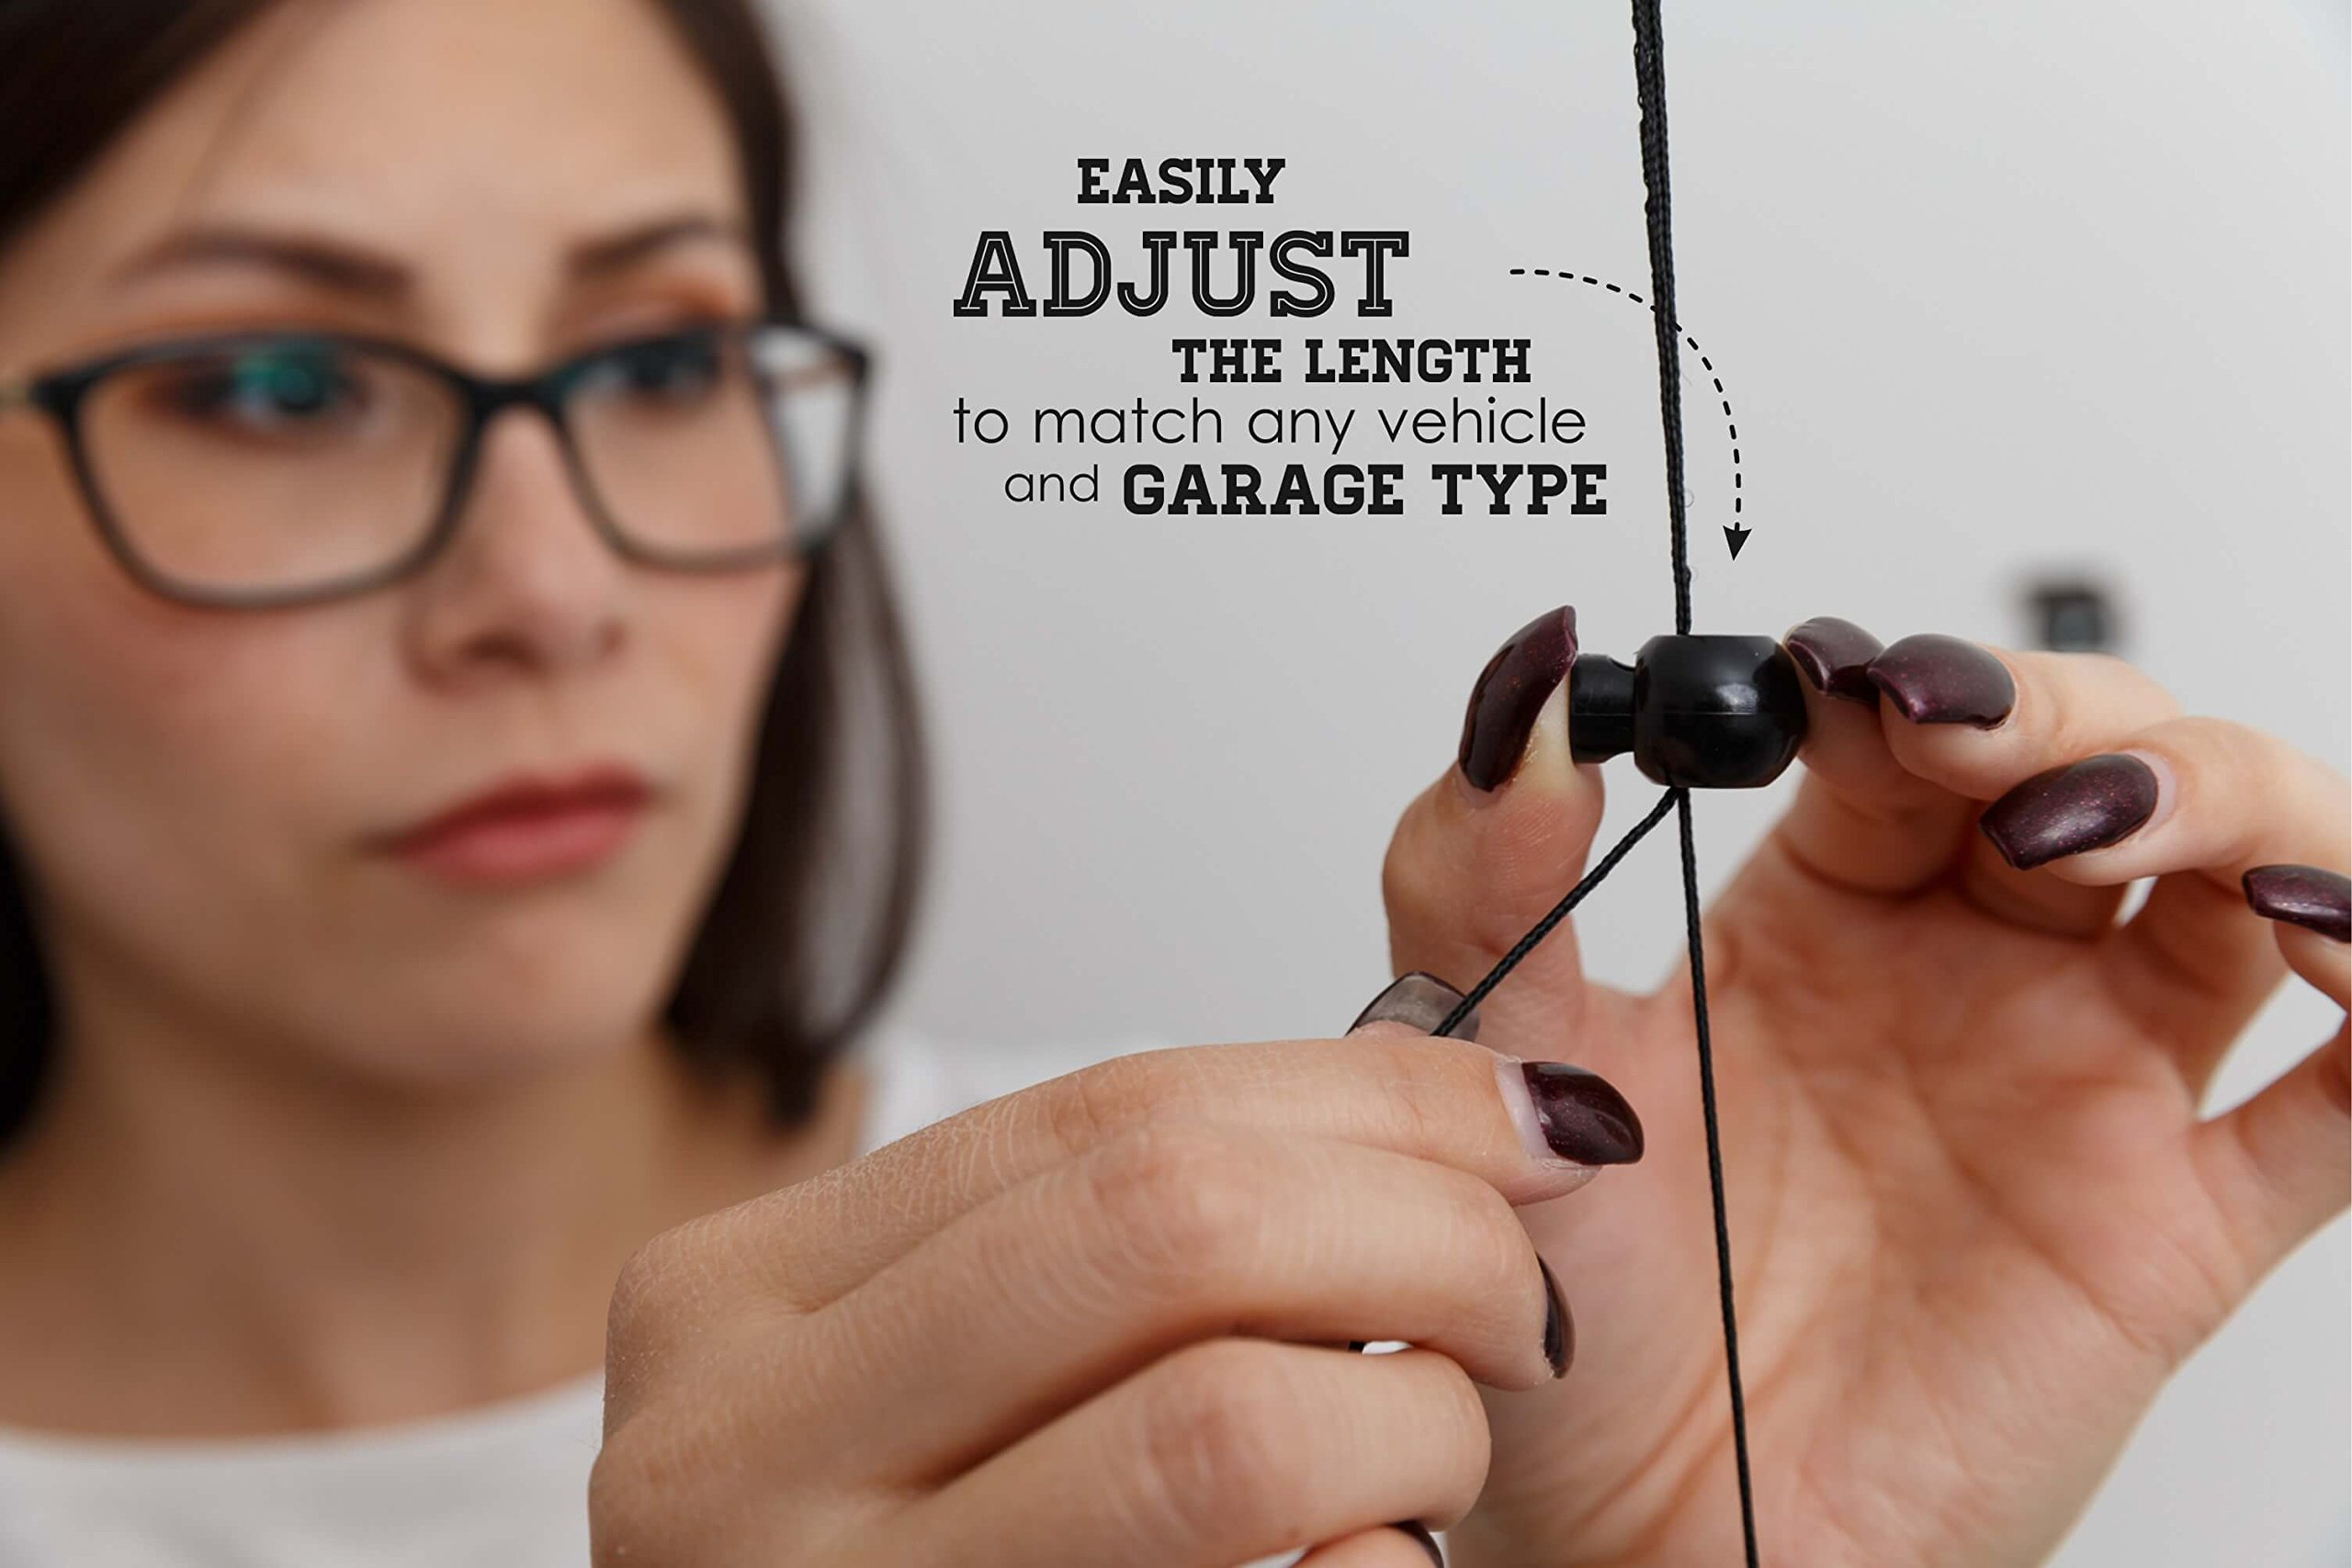 Double Garage Parking Aid - Ball Guide System. Simple to install adjustable parking assistant kit includes a retracting ball sensor assist solution. Perfect Garage Car Stop Indicator for all Vehicles by LetsInnovateLife (Image #4)